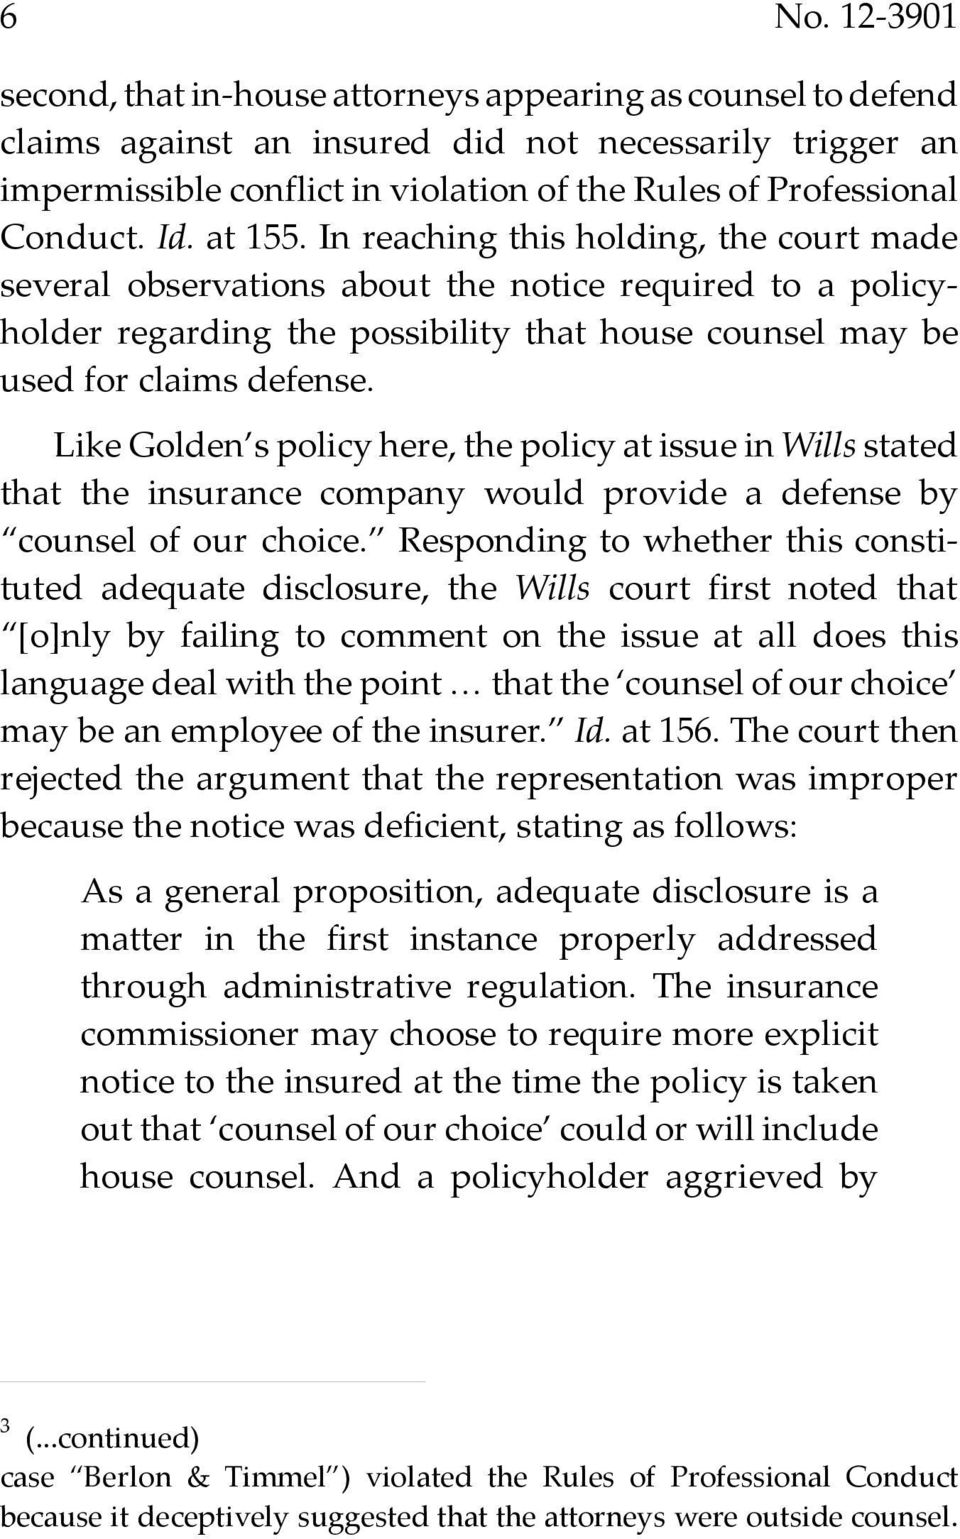 In reaching this holding, the court made several observations about the notice required to a policyholder regarding the possibility that house counsel may be used for claims defense.